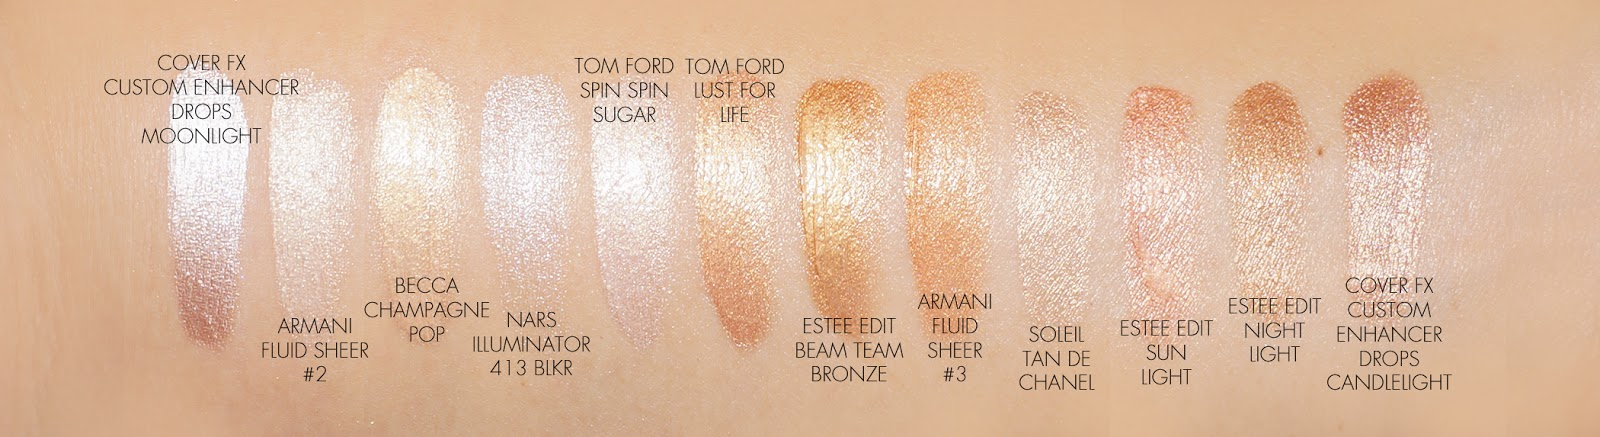 The Beauty Look Book - Tom Ford Shimmer Shot comparisons